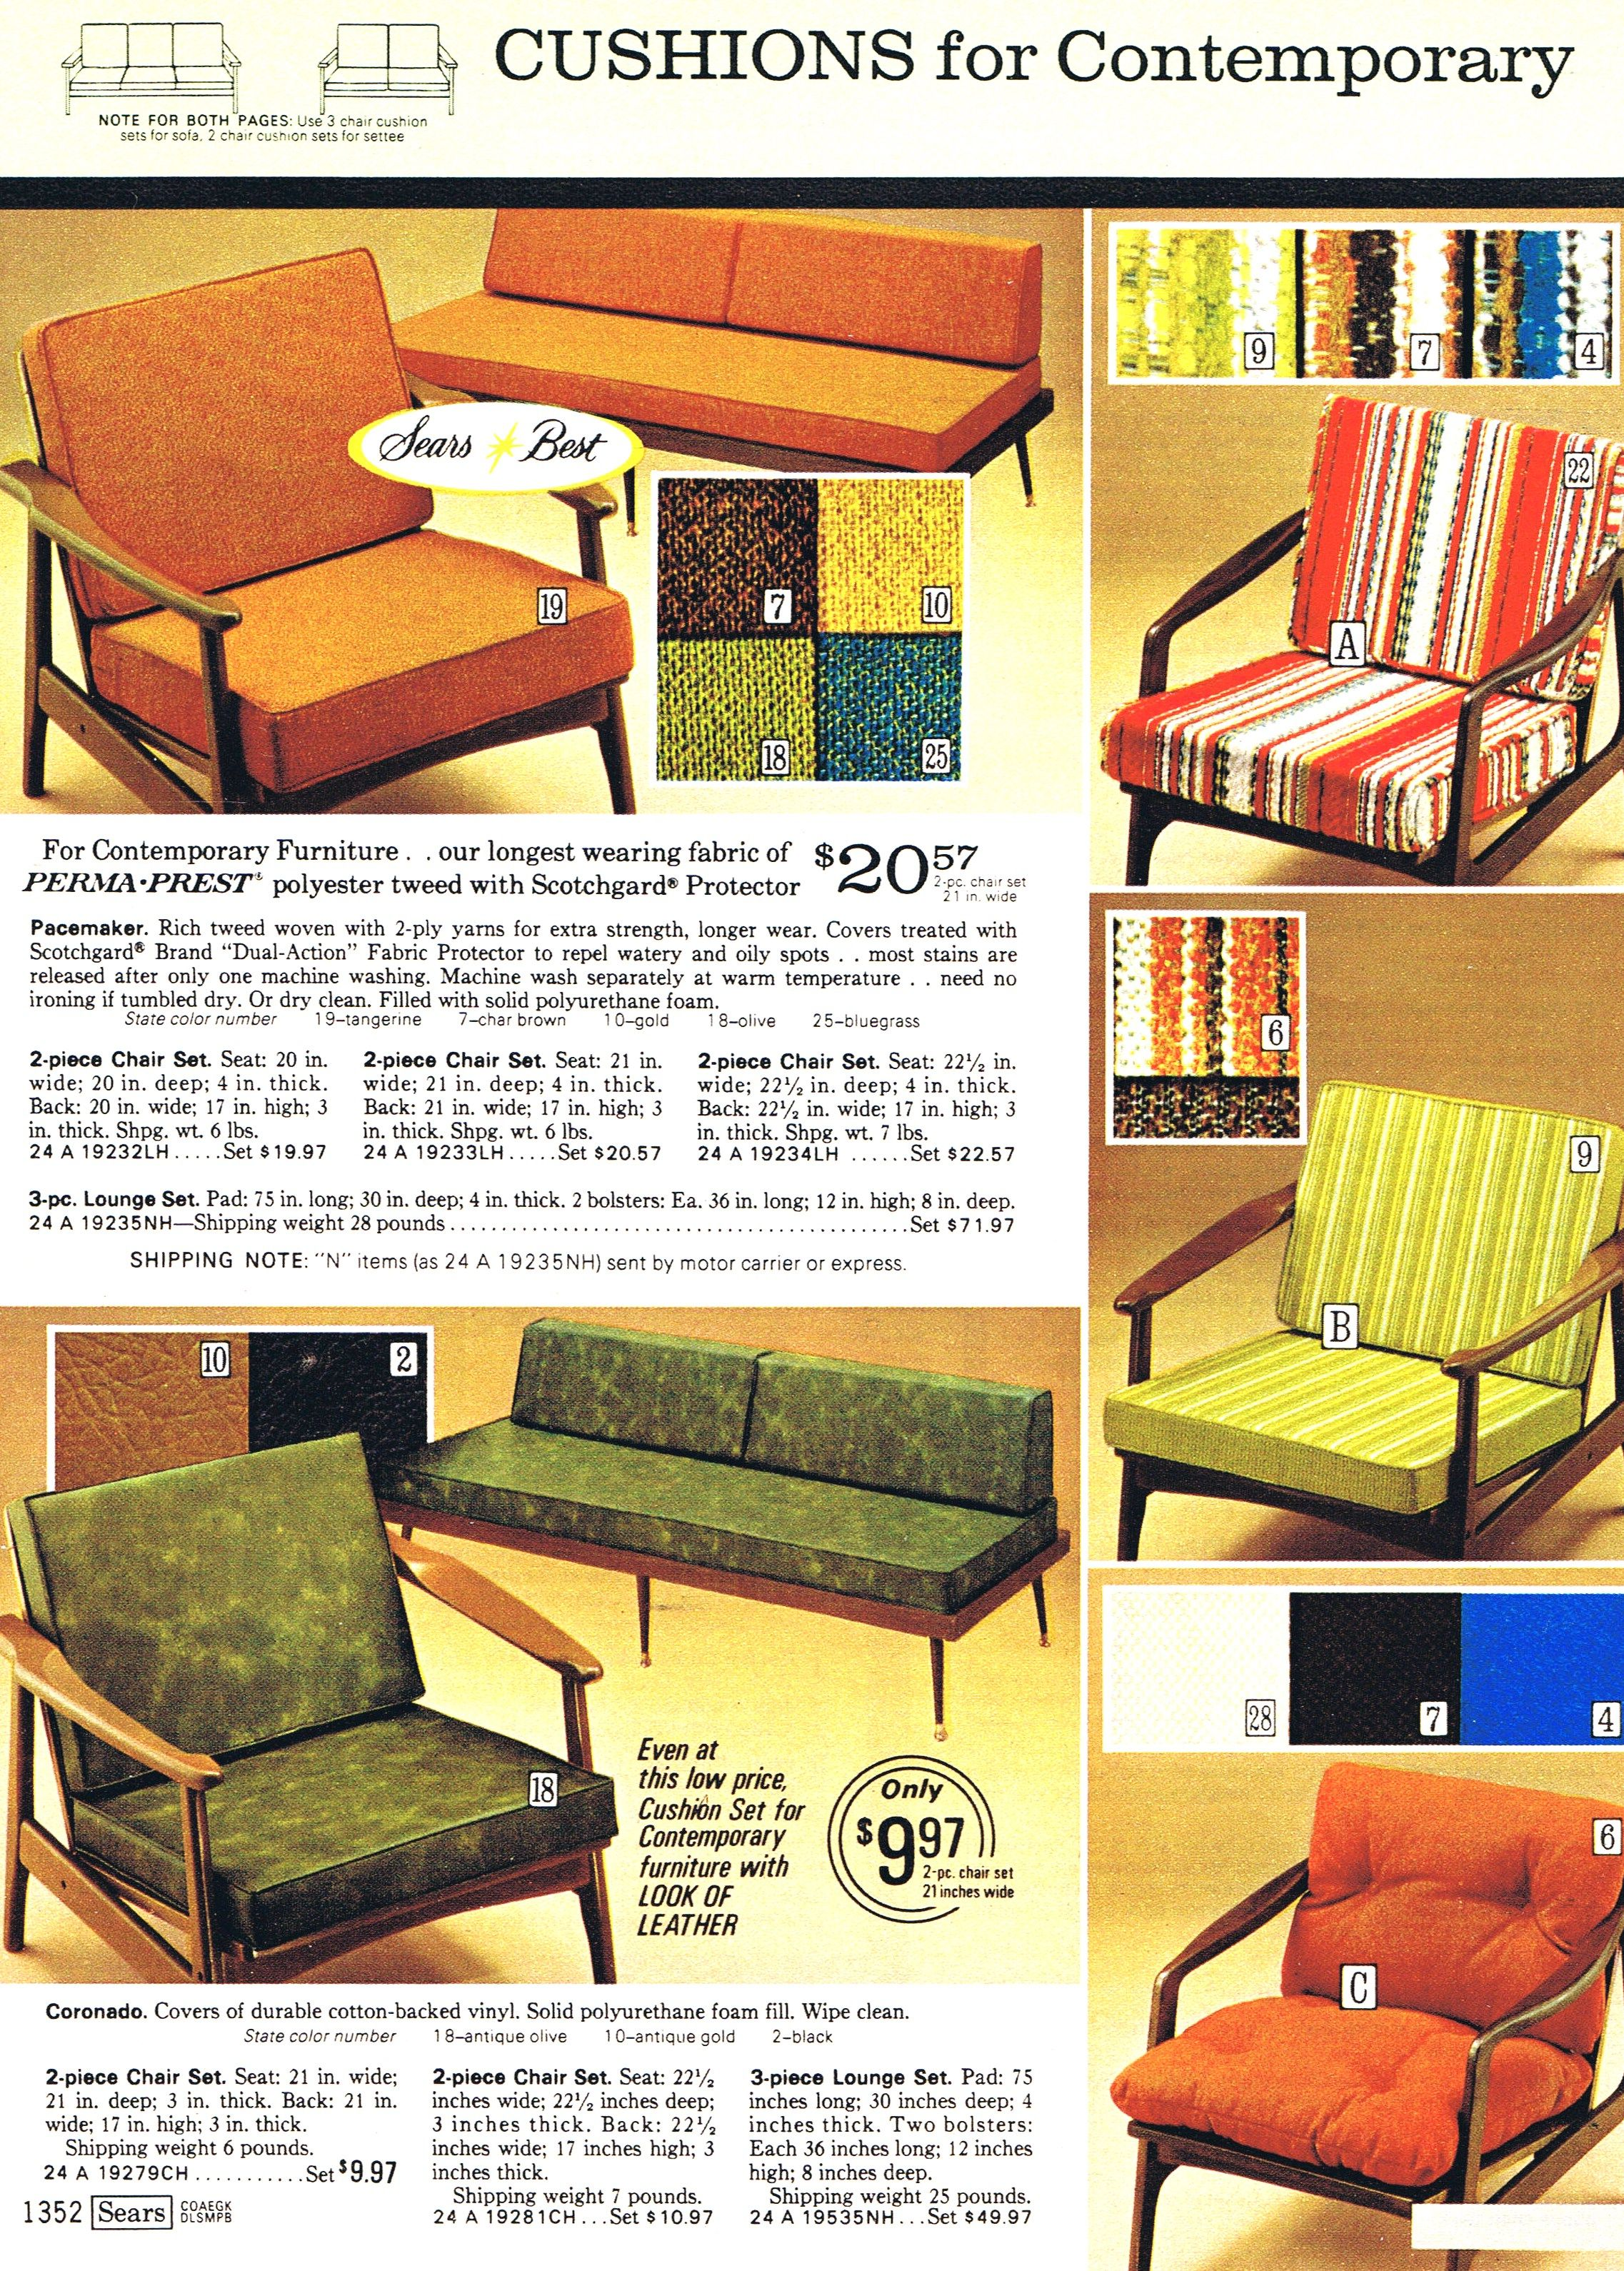 Mcm Chair Cushions From Sears The Mid Century Mail Order